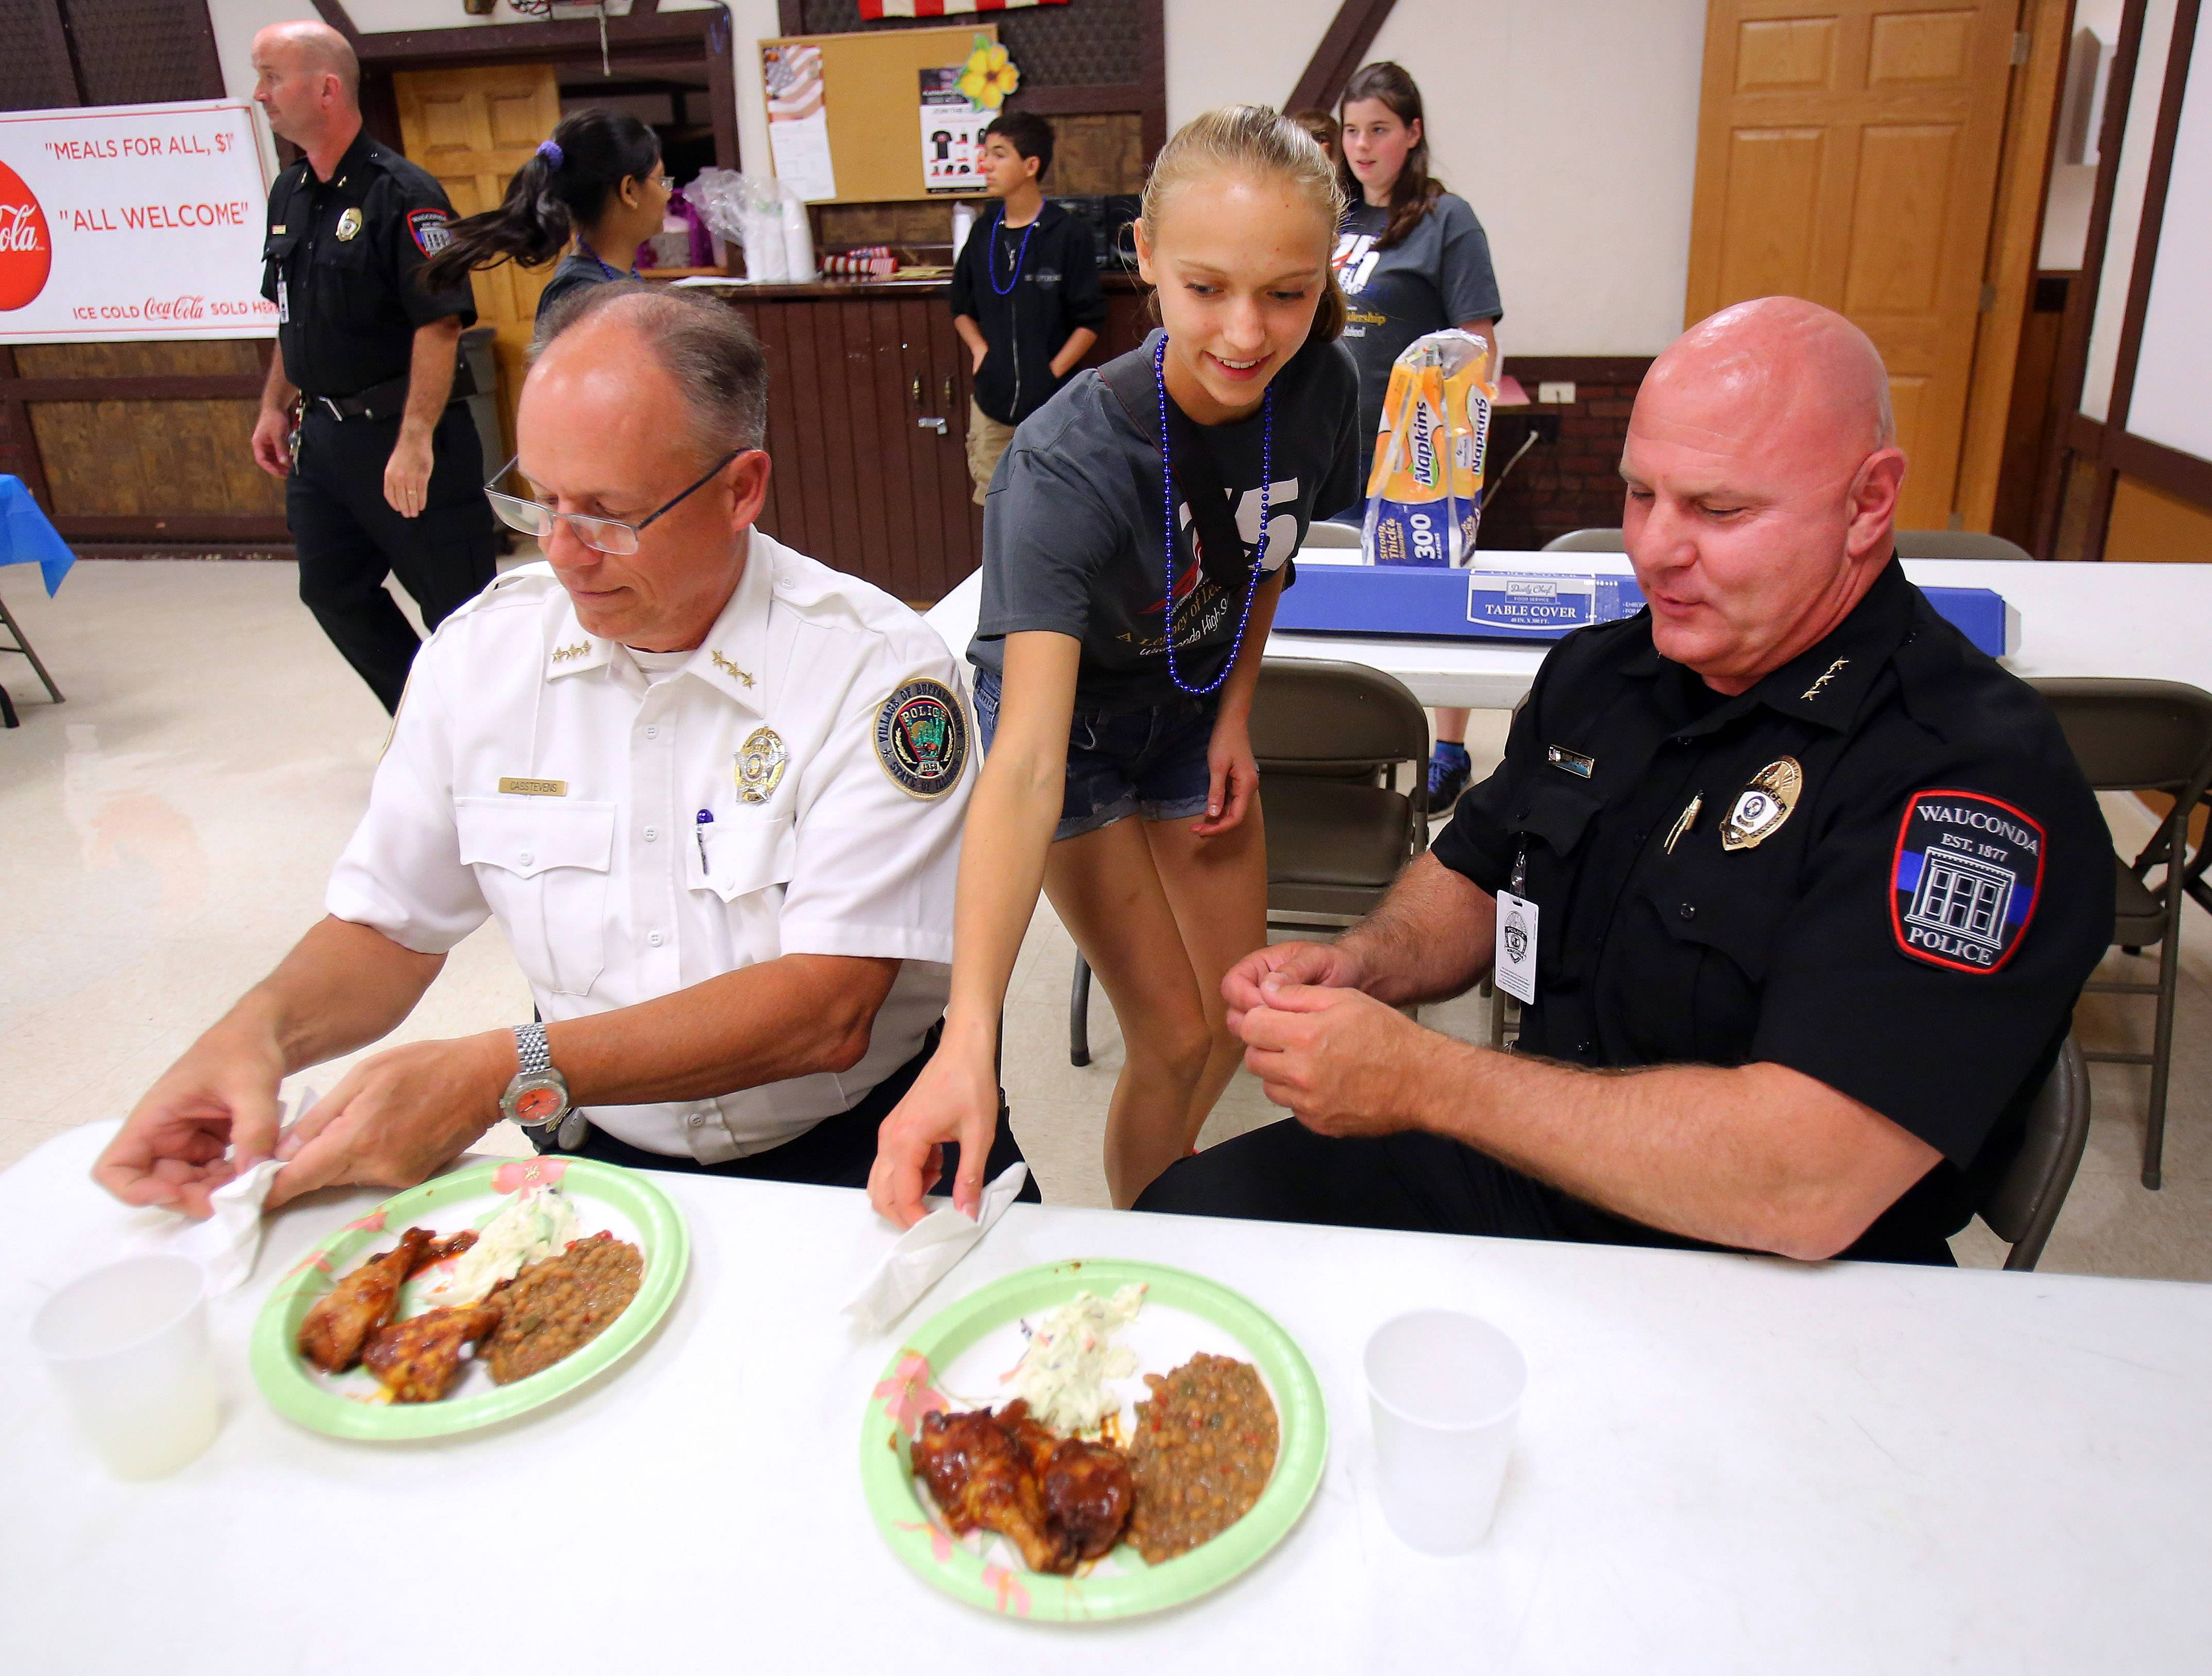 Police officers enjoy free meal in Wauconda